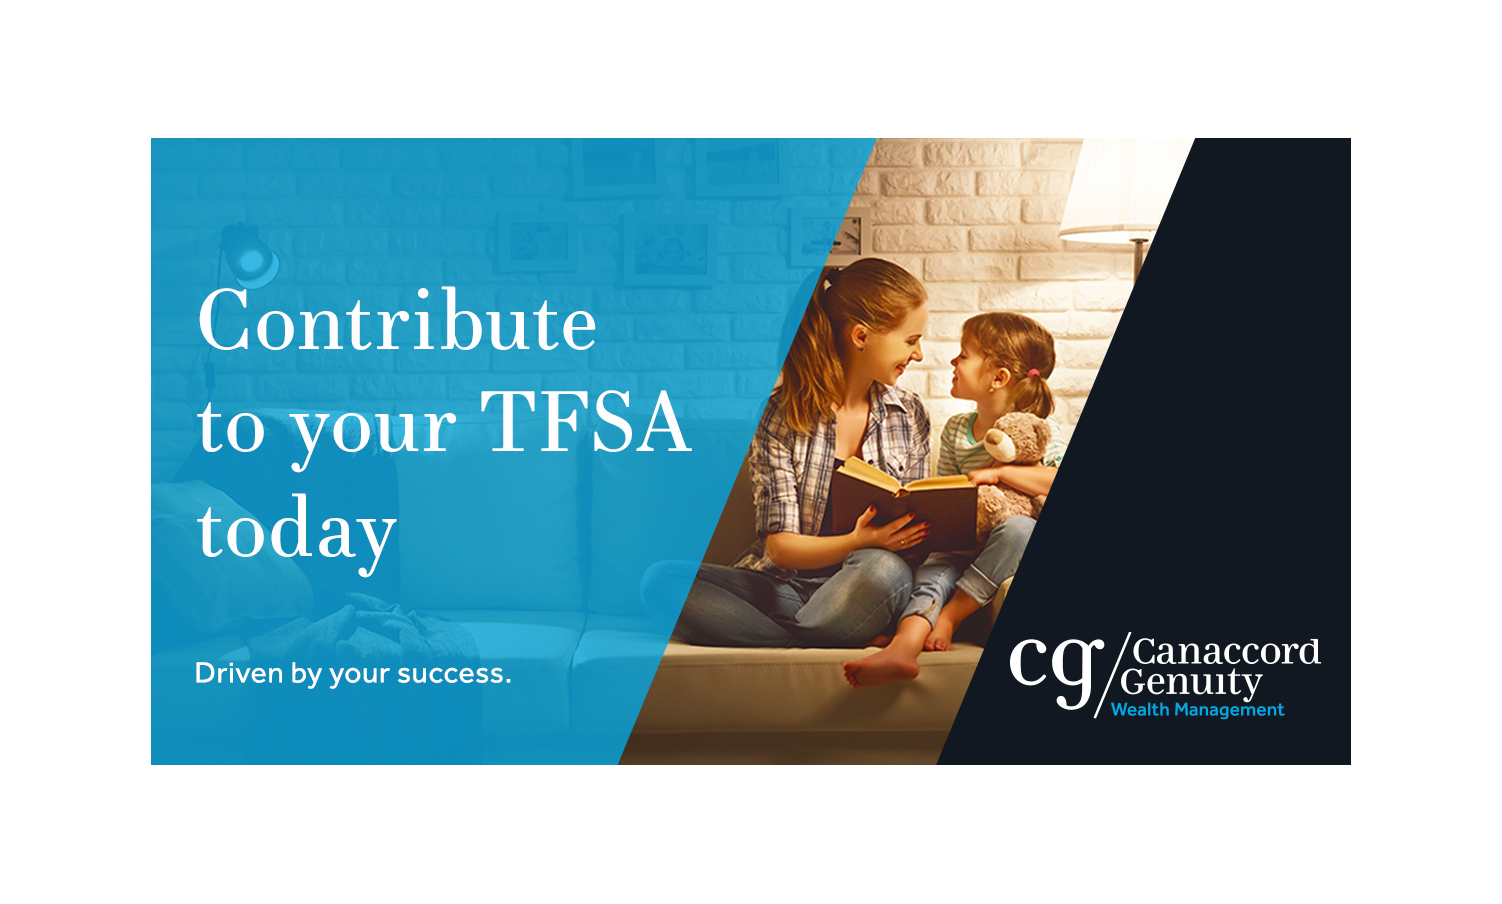 Contribute to your TFSA today